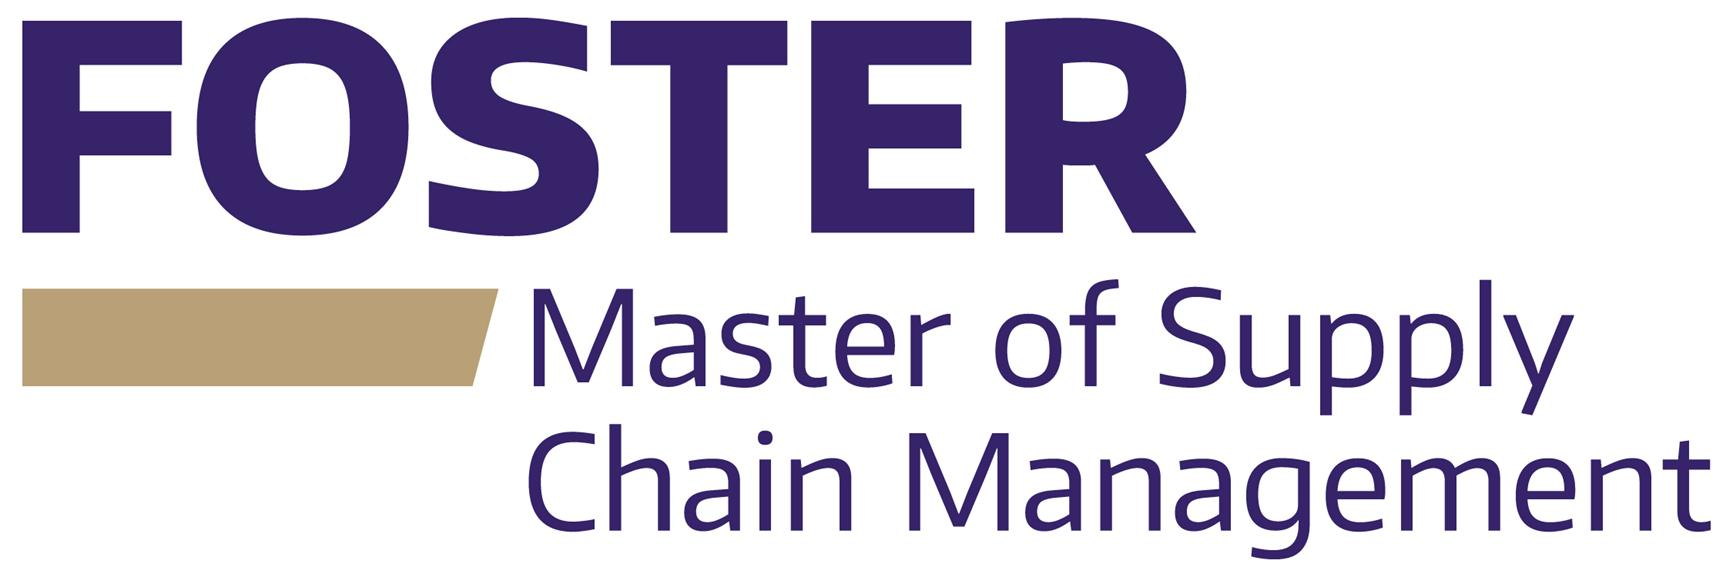 Online Information Session - Master of Supply Chain Management